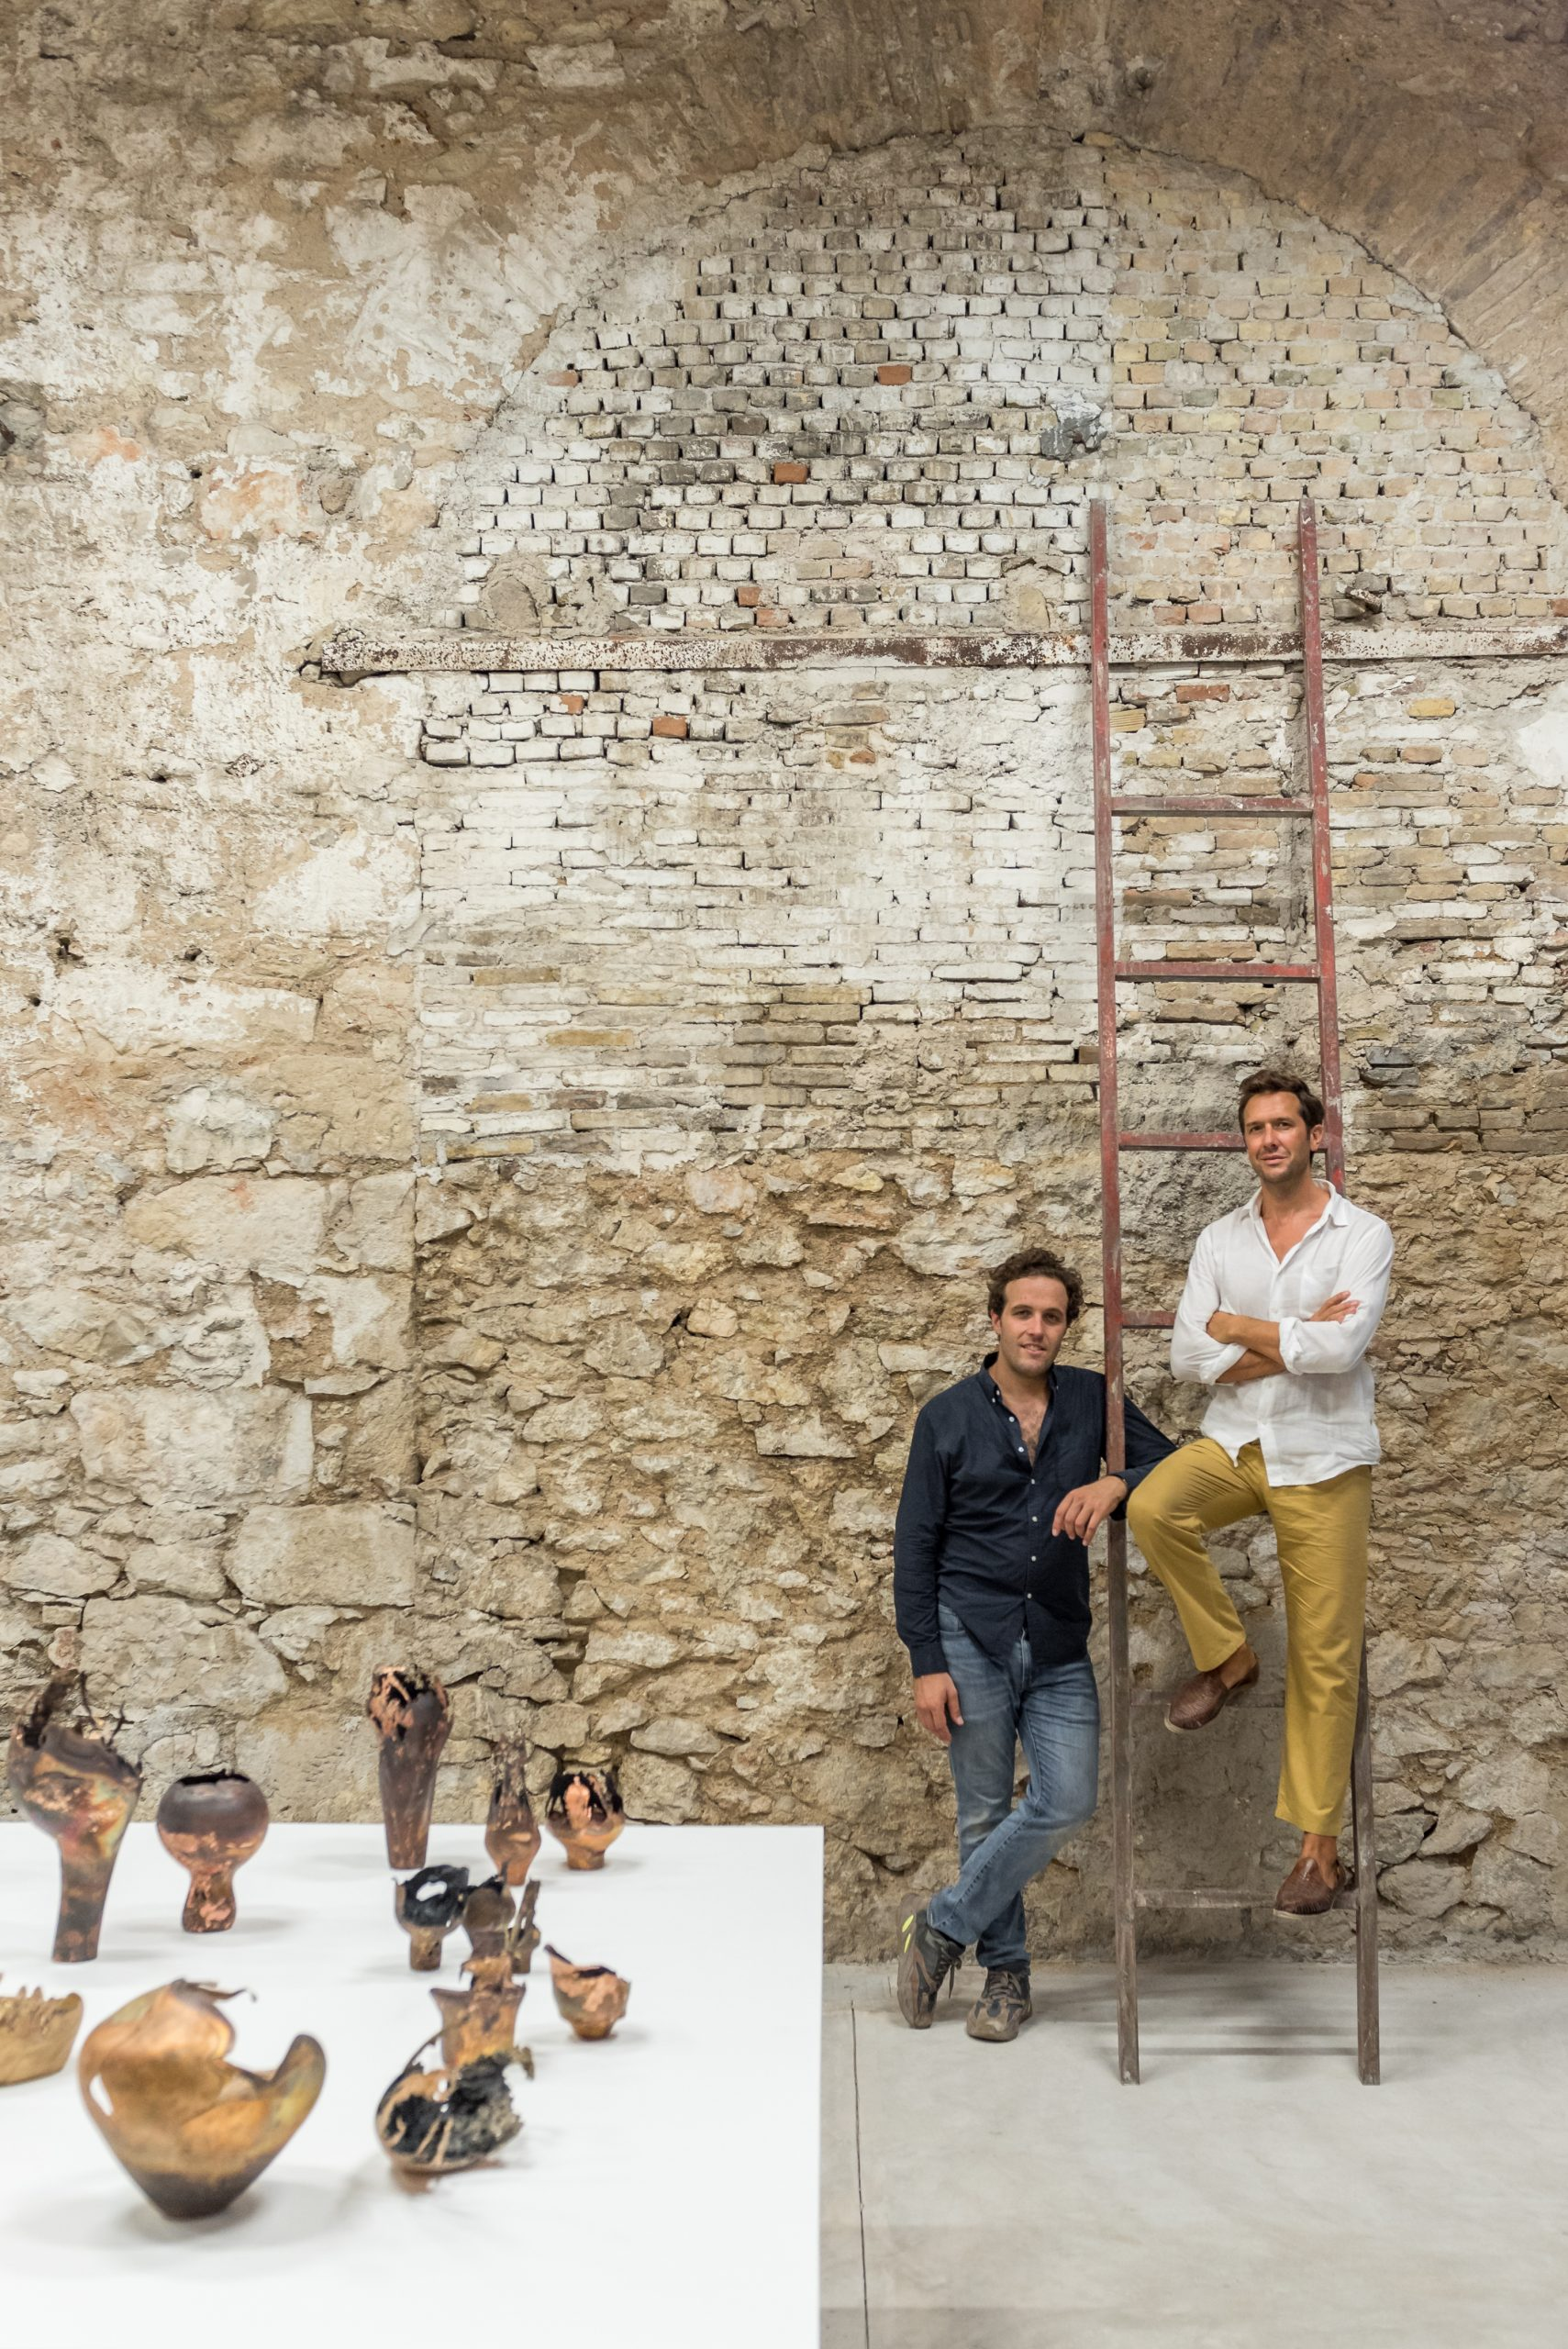 Portrait of Carwan Gallery owners Quentin Moyse and Nicolas Bellavance-Lecompte